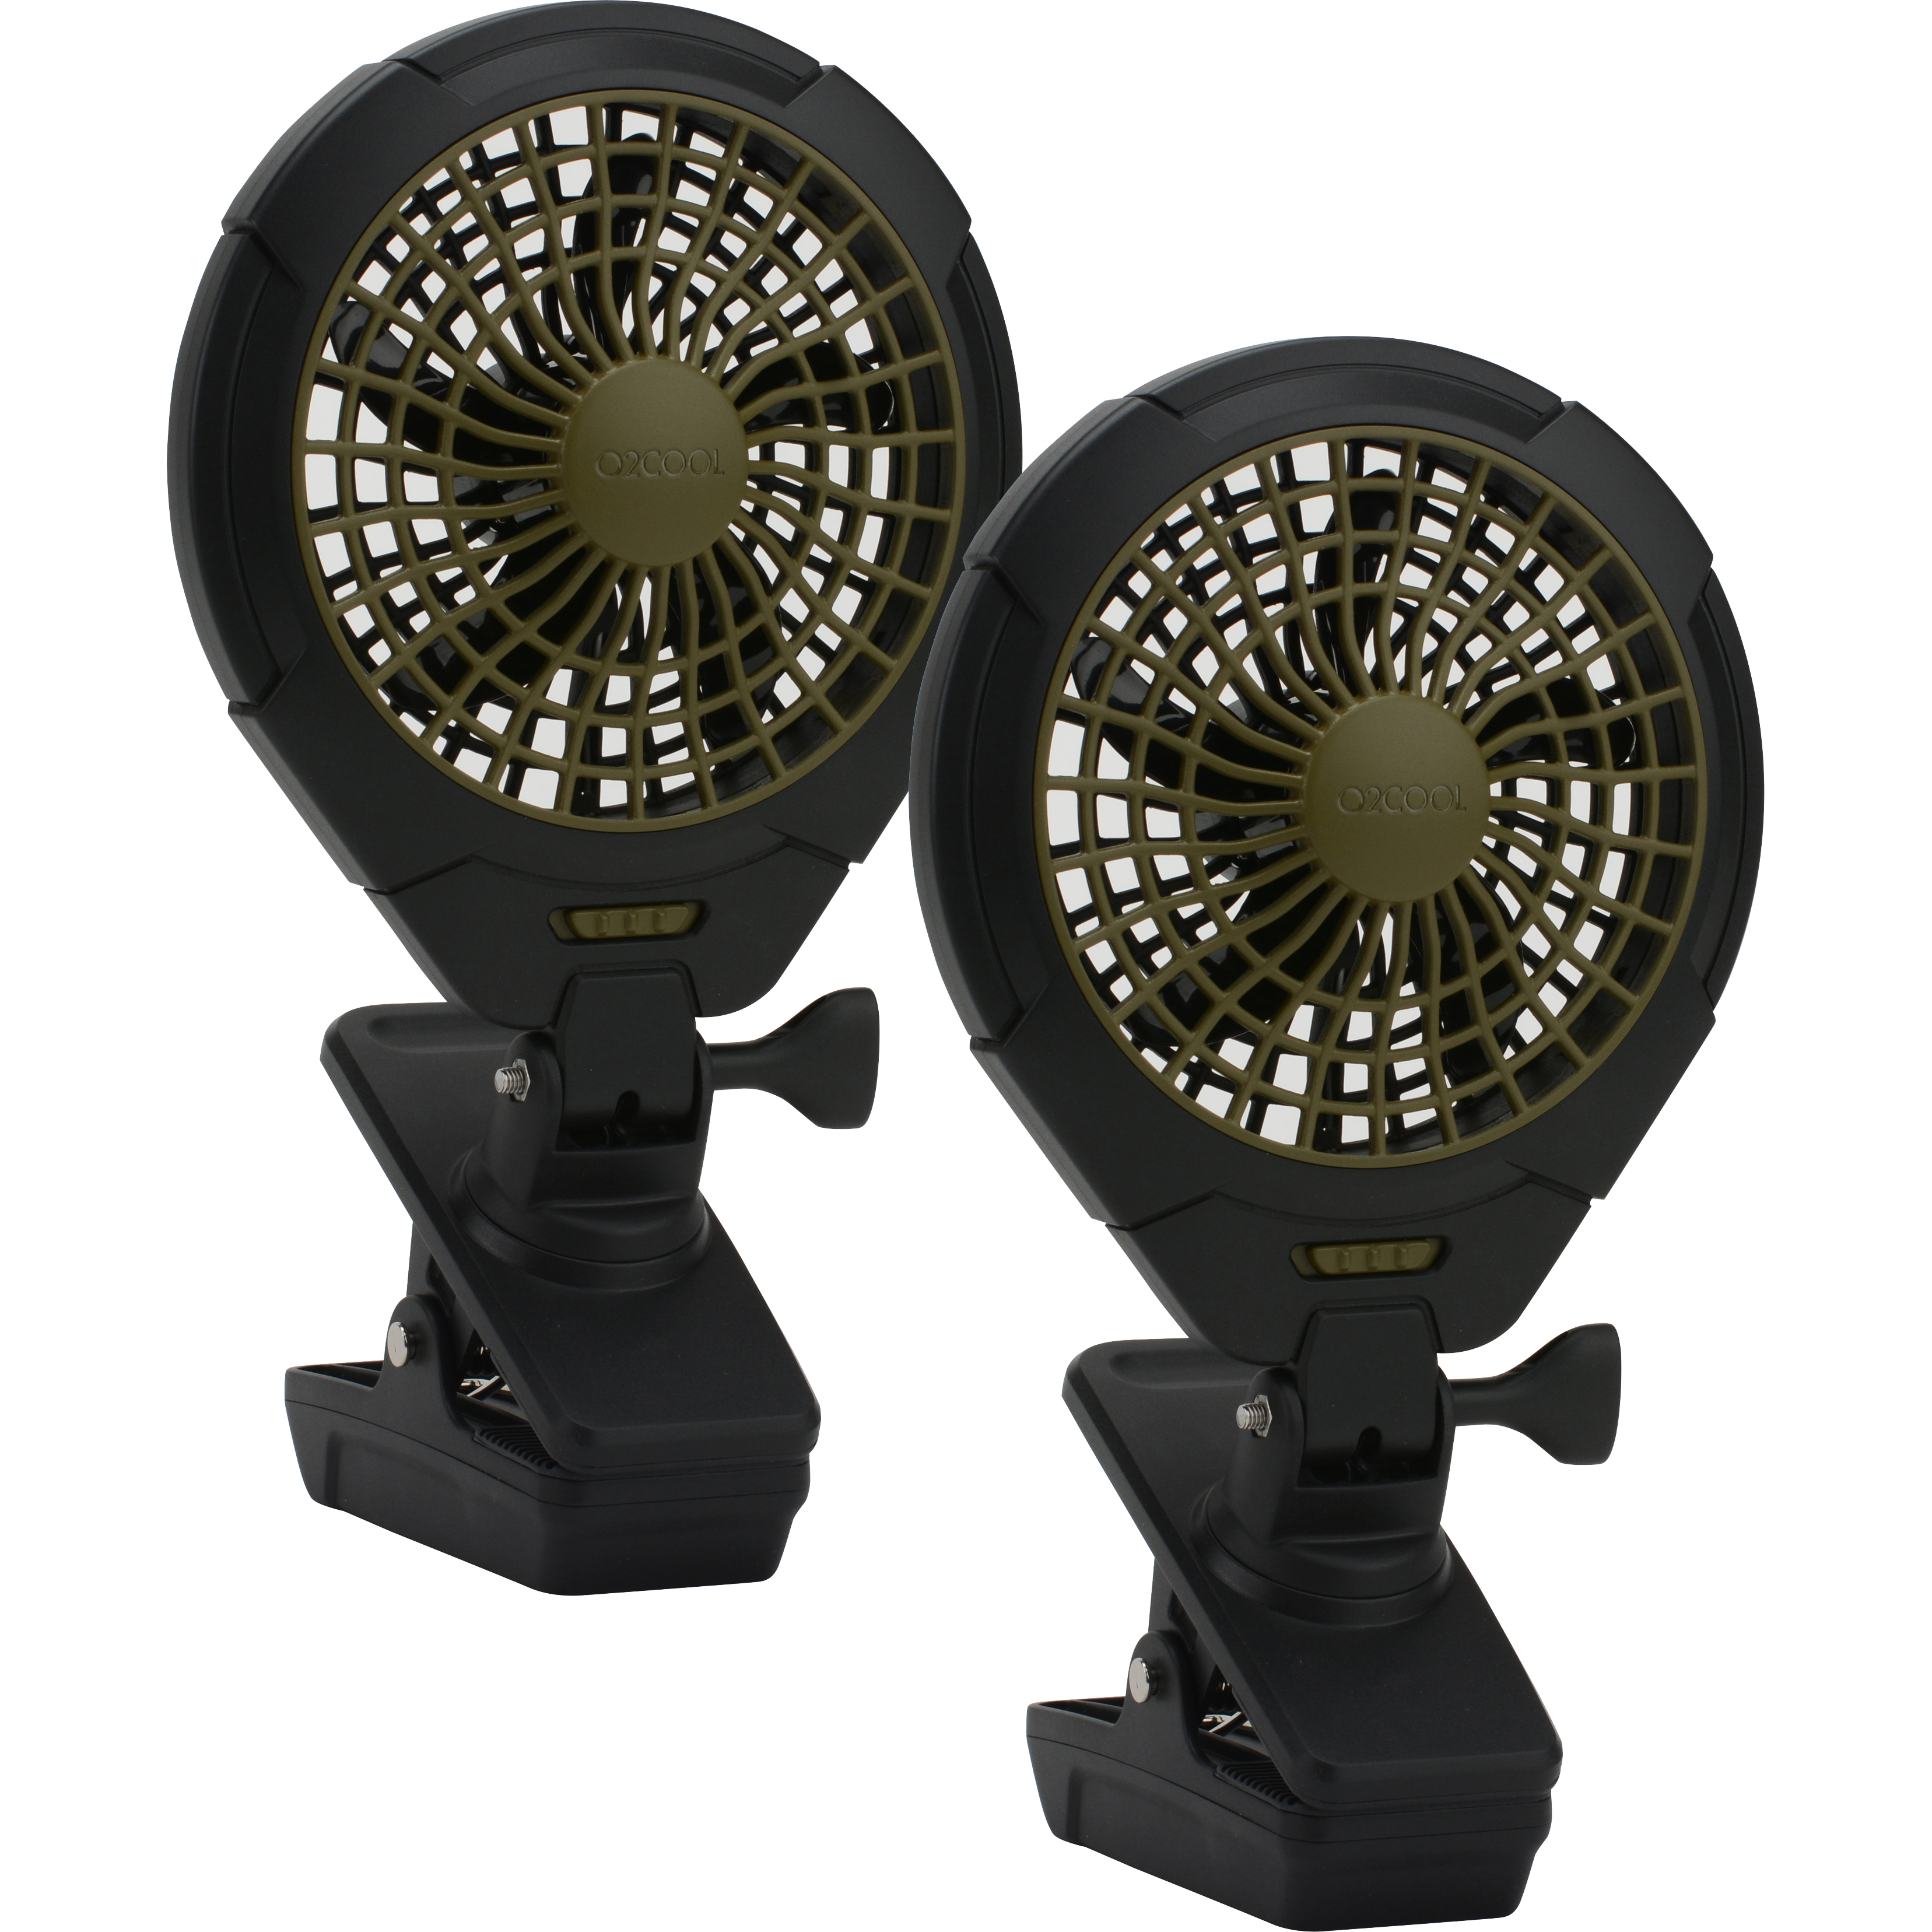 """O2COOL 5"""" Battery-Operated Clip Fan, 2 pack"""